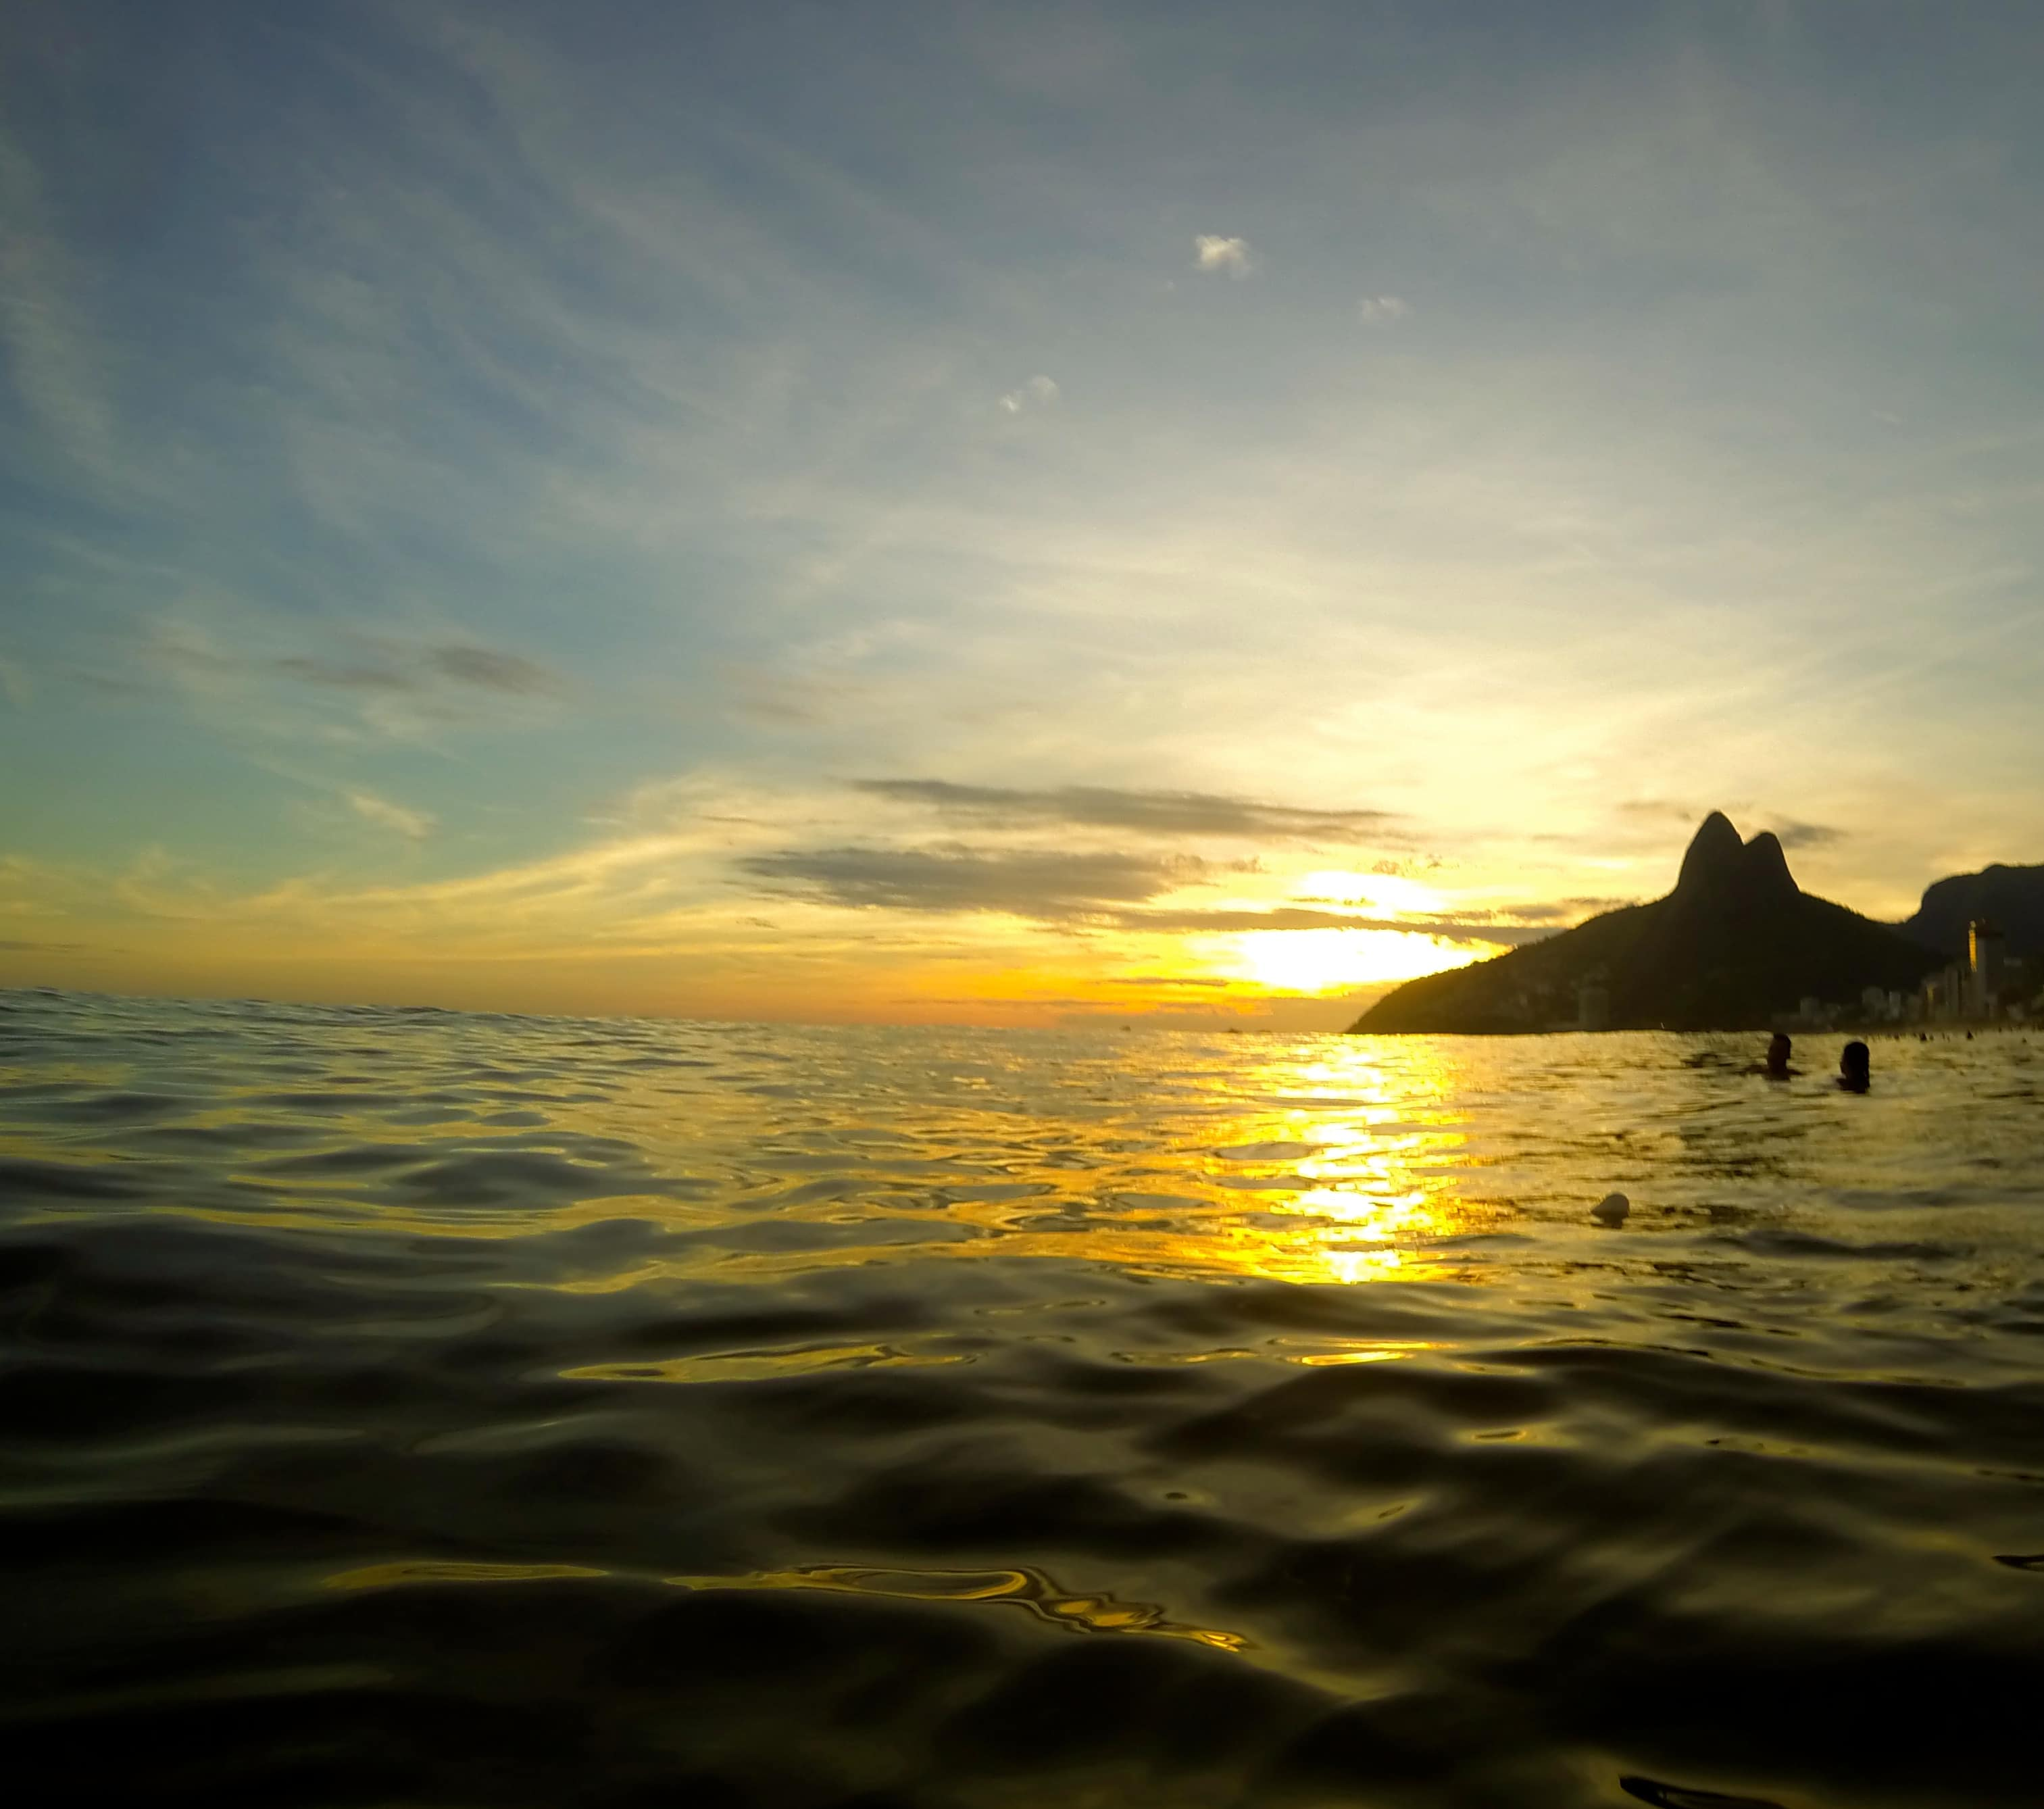 Ipanema Beach & Sugarloaf Mountain